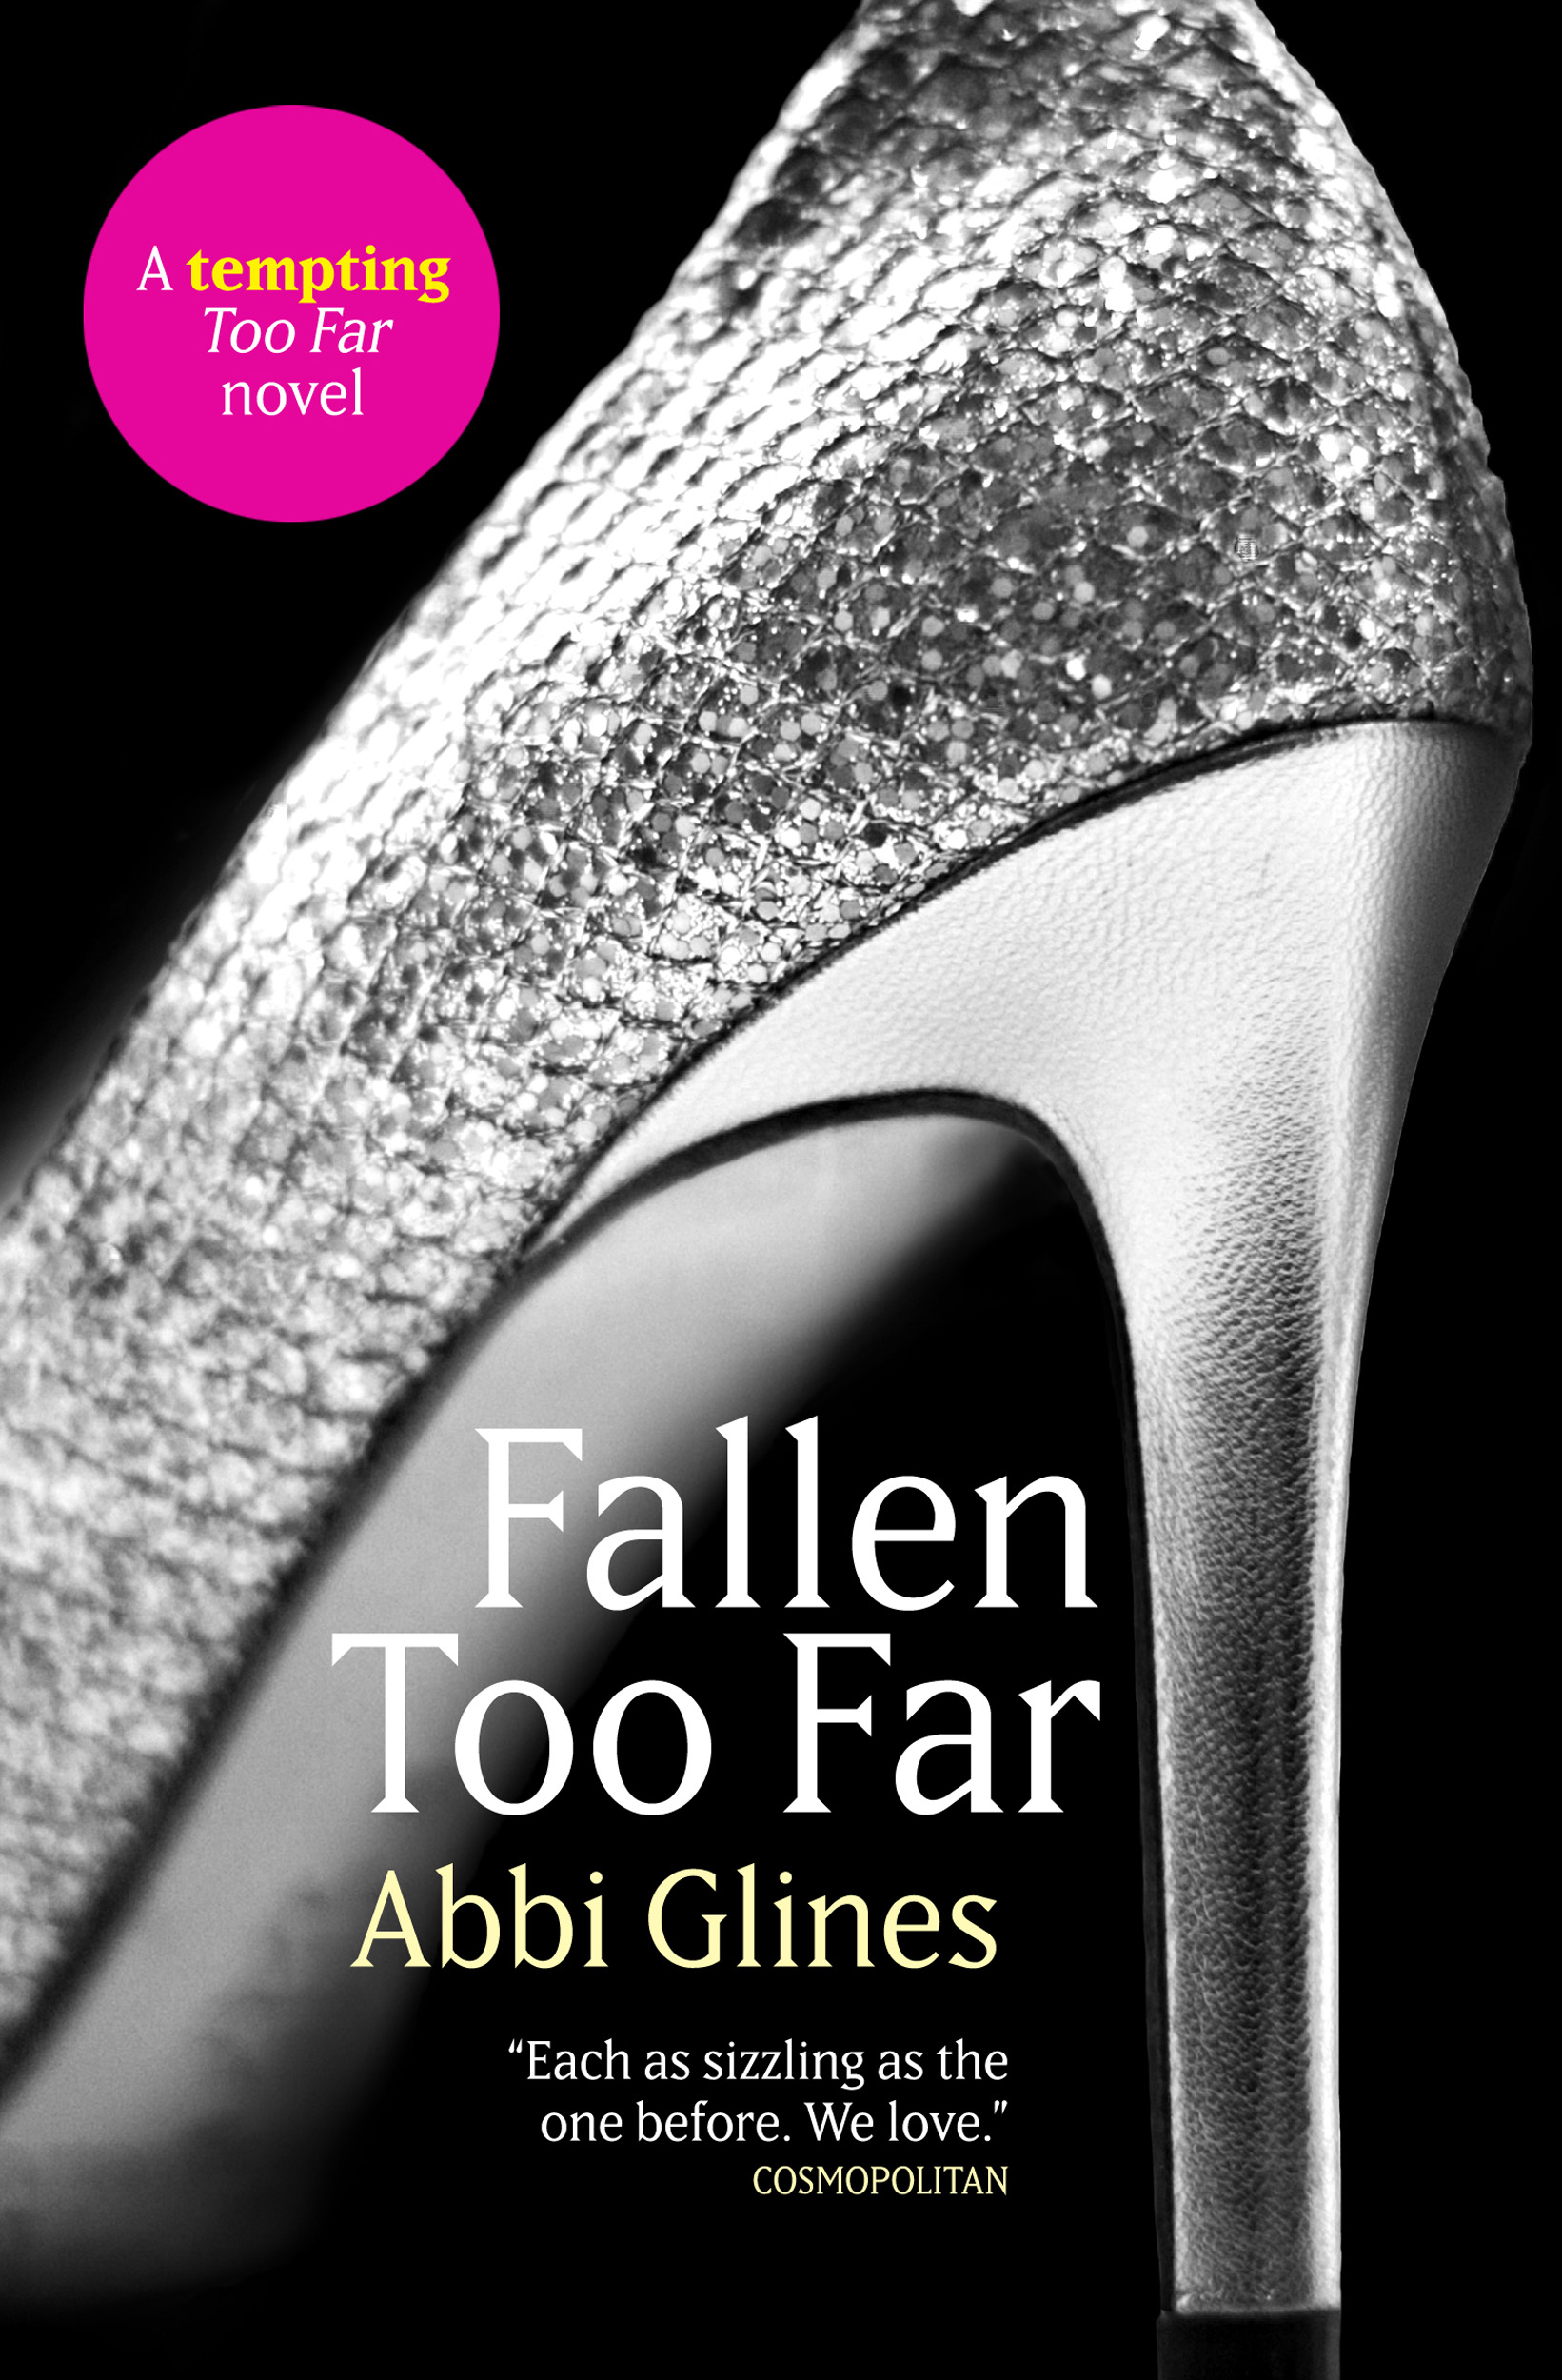 Fallen too far book by abbi glines official publisher page book cover image jpg fallen too far fandeluxe Choice Image